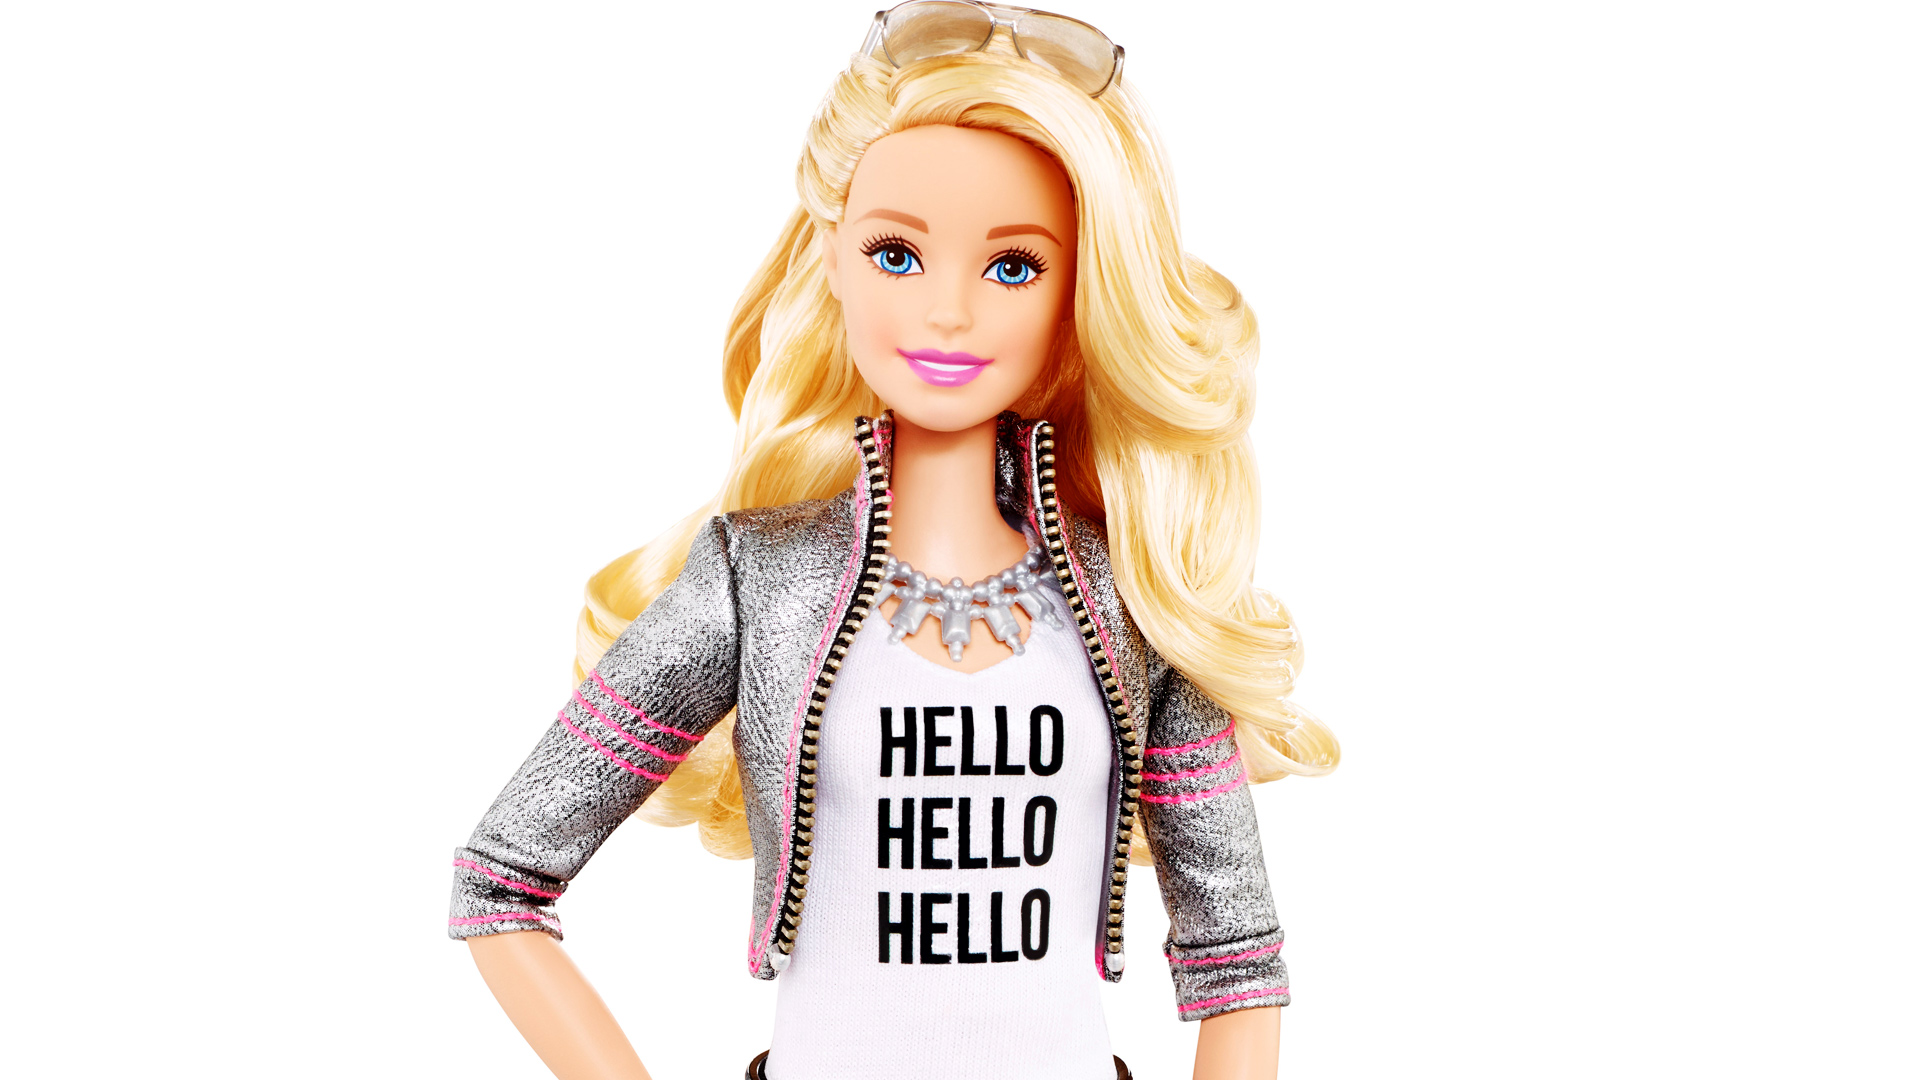 So, that Wi-Fi Barbie is scary for a lot of reasons